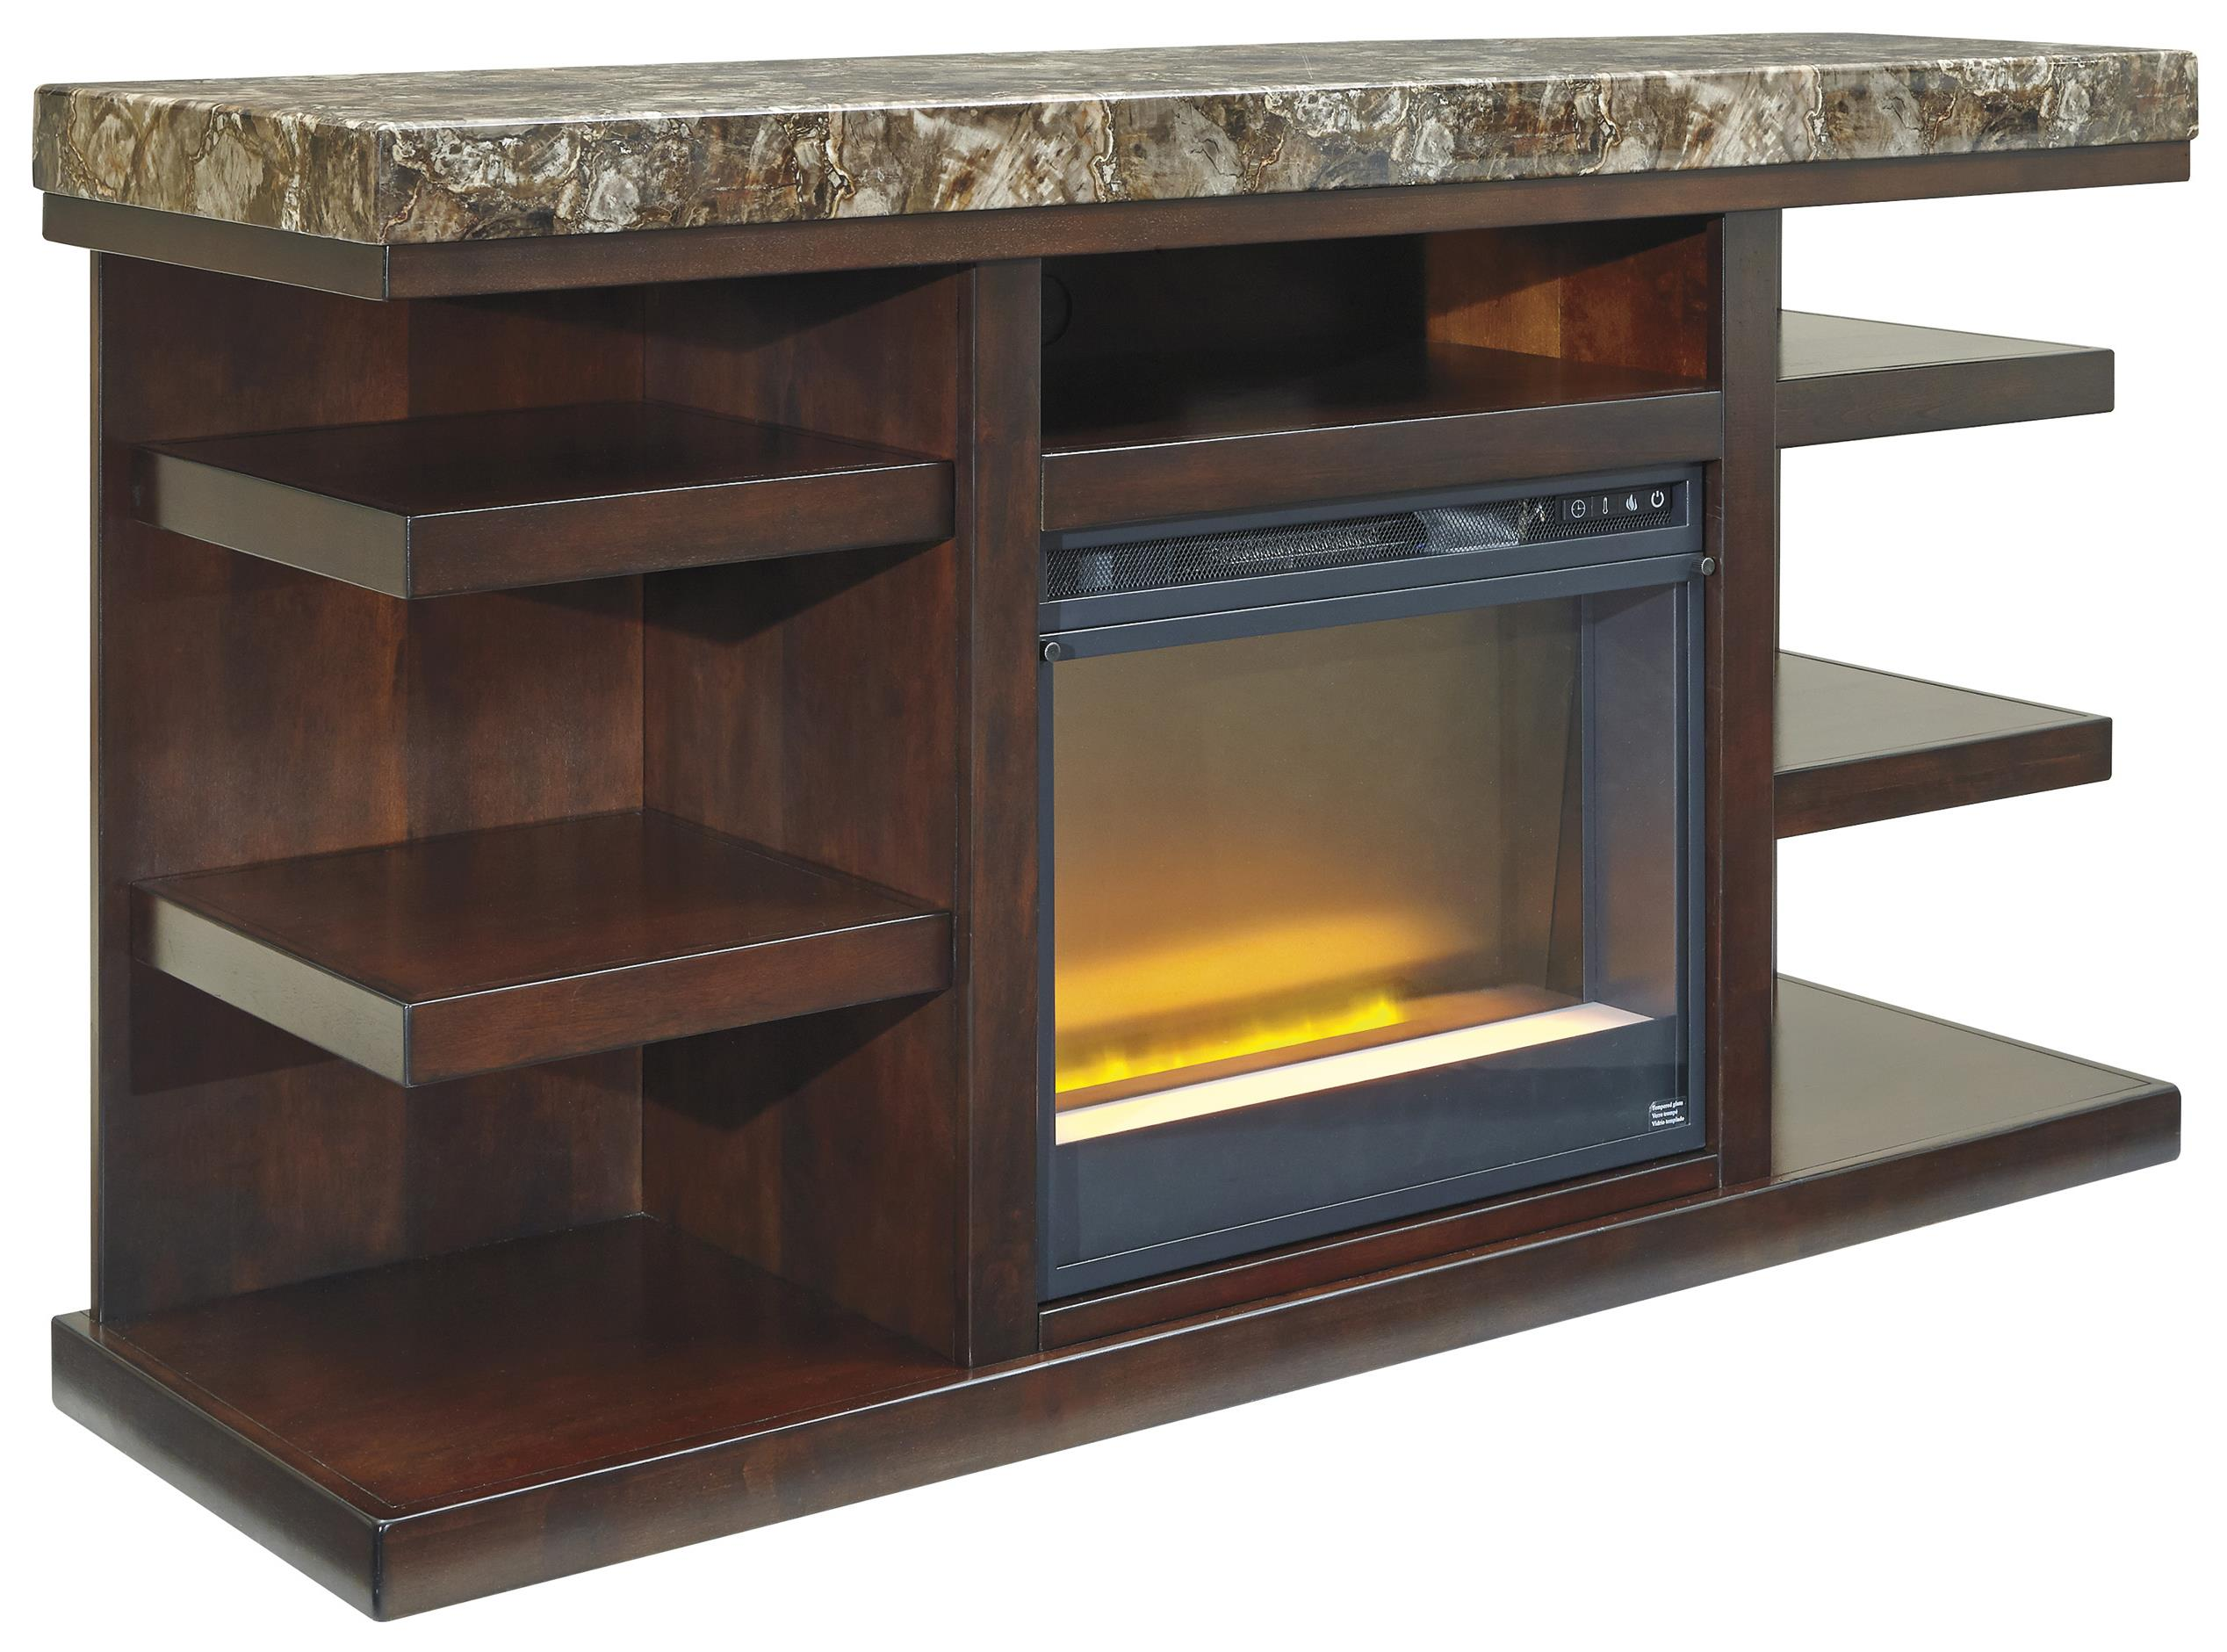 electric s igne toronto familyroomw ferro gas in residence store family fireplaces best condo fireplace modern sc room